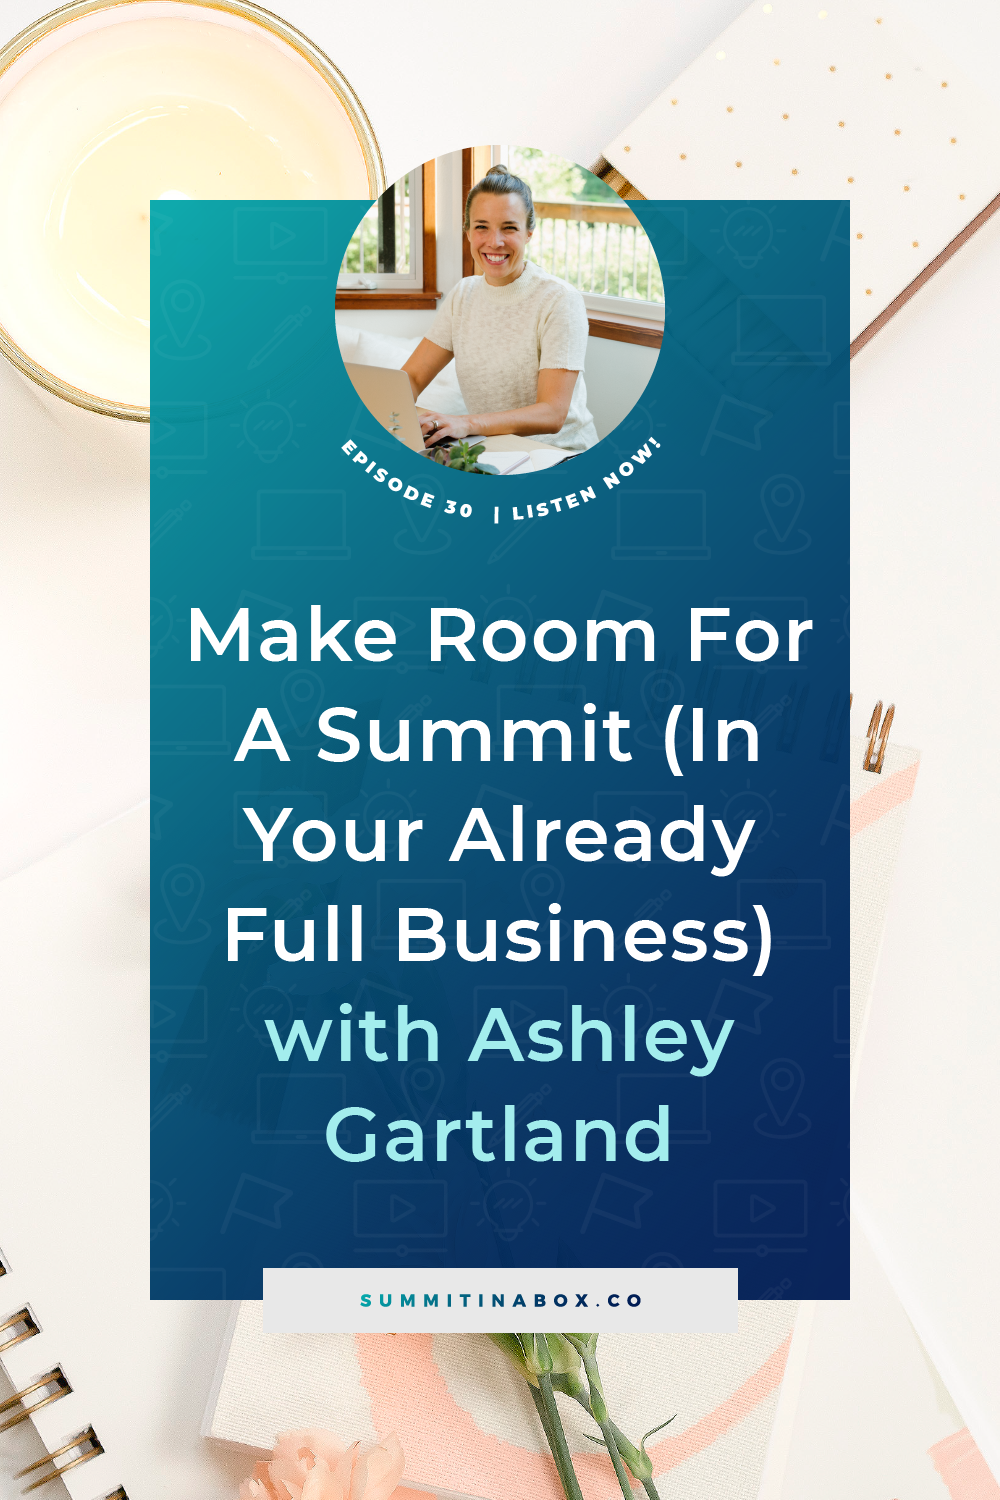 How can you possibly make time for a virtual summit when your schedule is already full? Here's how to make room for a summit in an already busy schedule.